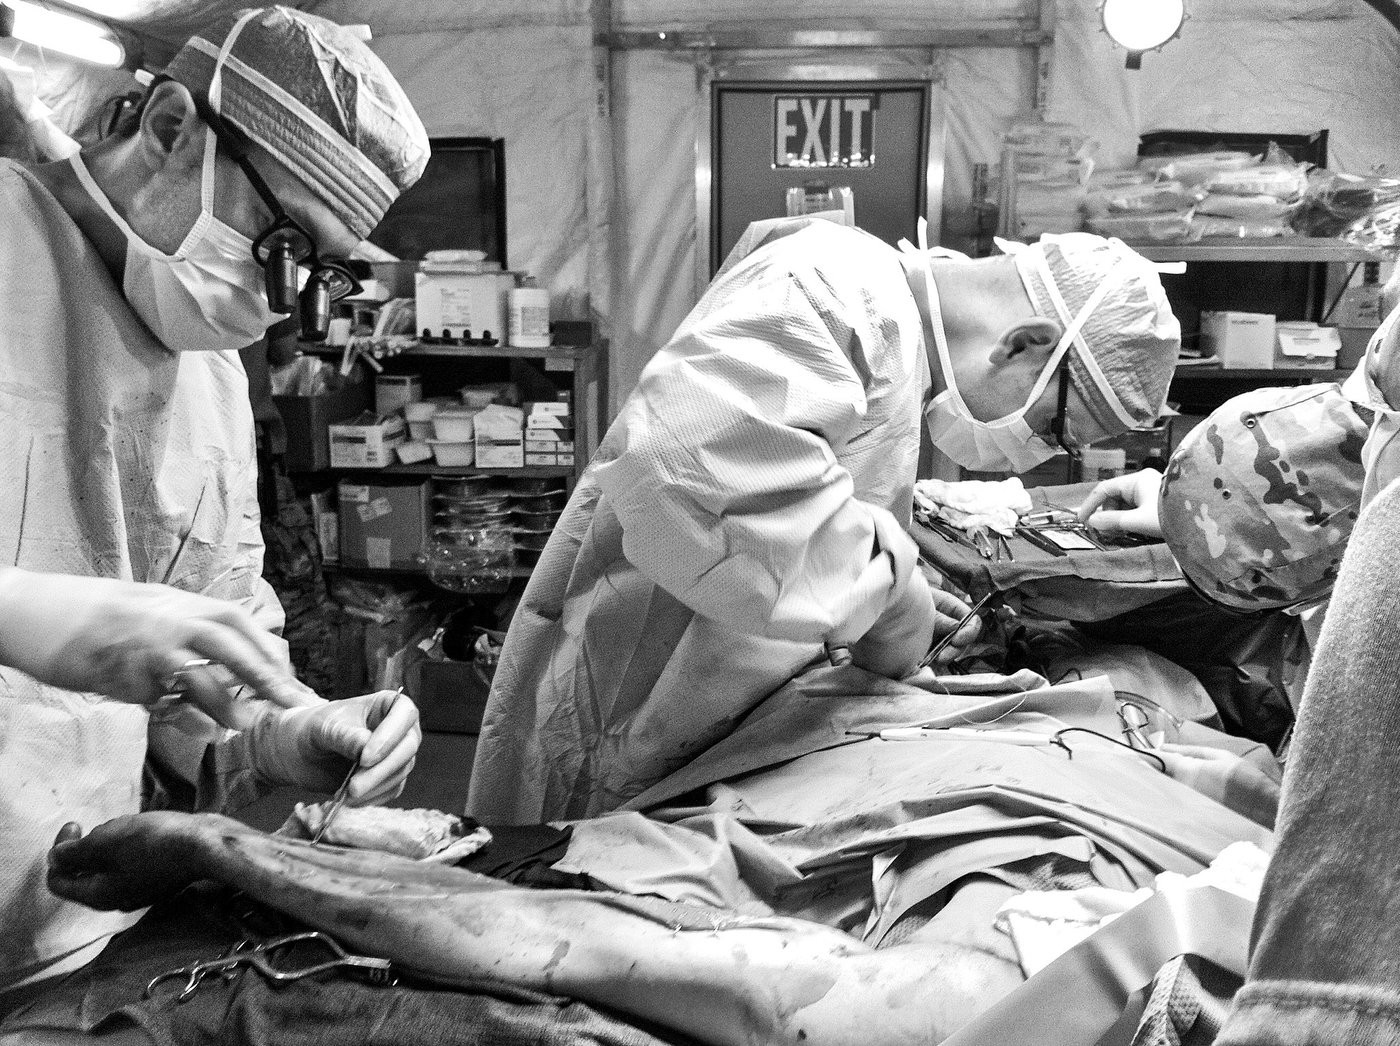 Lt. Col. (Dr.) Jean-Claude G. D'Alleyrand, center, performs trauma surgery on a soldier wounded in Afghanistan in 2012. The following year, Dr. D'Alleyrand was named Chief of Orthopedic Trauma Surgery at Walter Reed National Military Medical Center in Bethesda, Maryland. There, he develops a program for lengthening the limbs of combat-wounded amputees with extremely short residual limbs who would otherwise be unable to use prosthetics. He takes over Sgt. Rob Easley's case in 2014, as Rob is a perfect candidate for the treatment that could allow him to walk again.